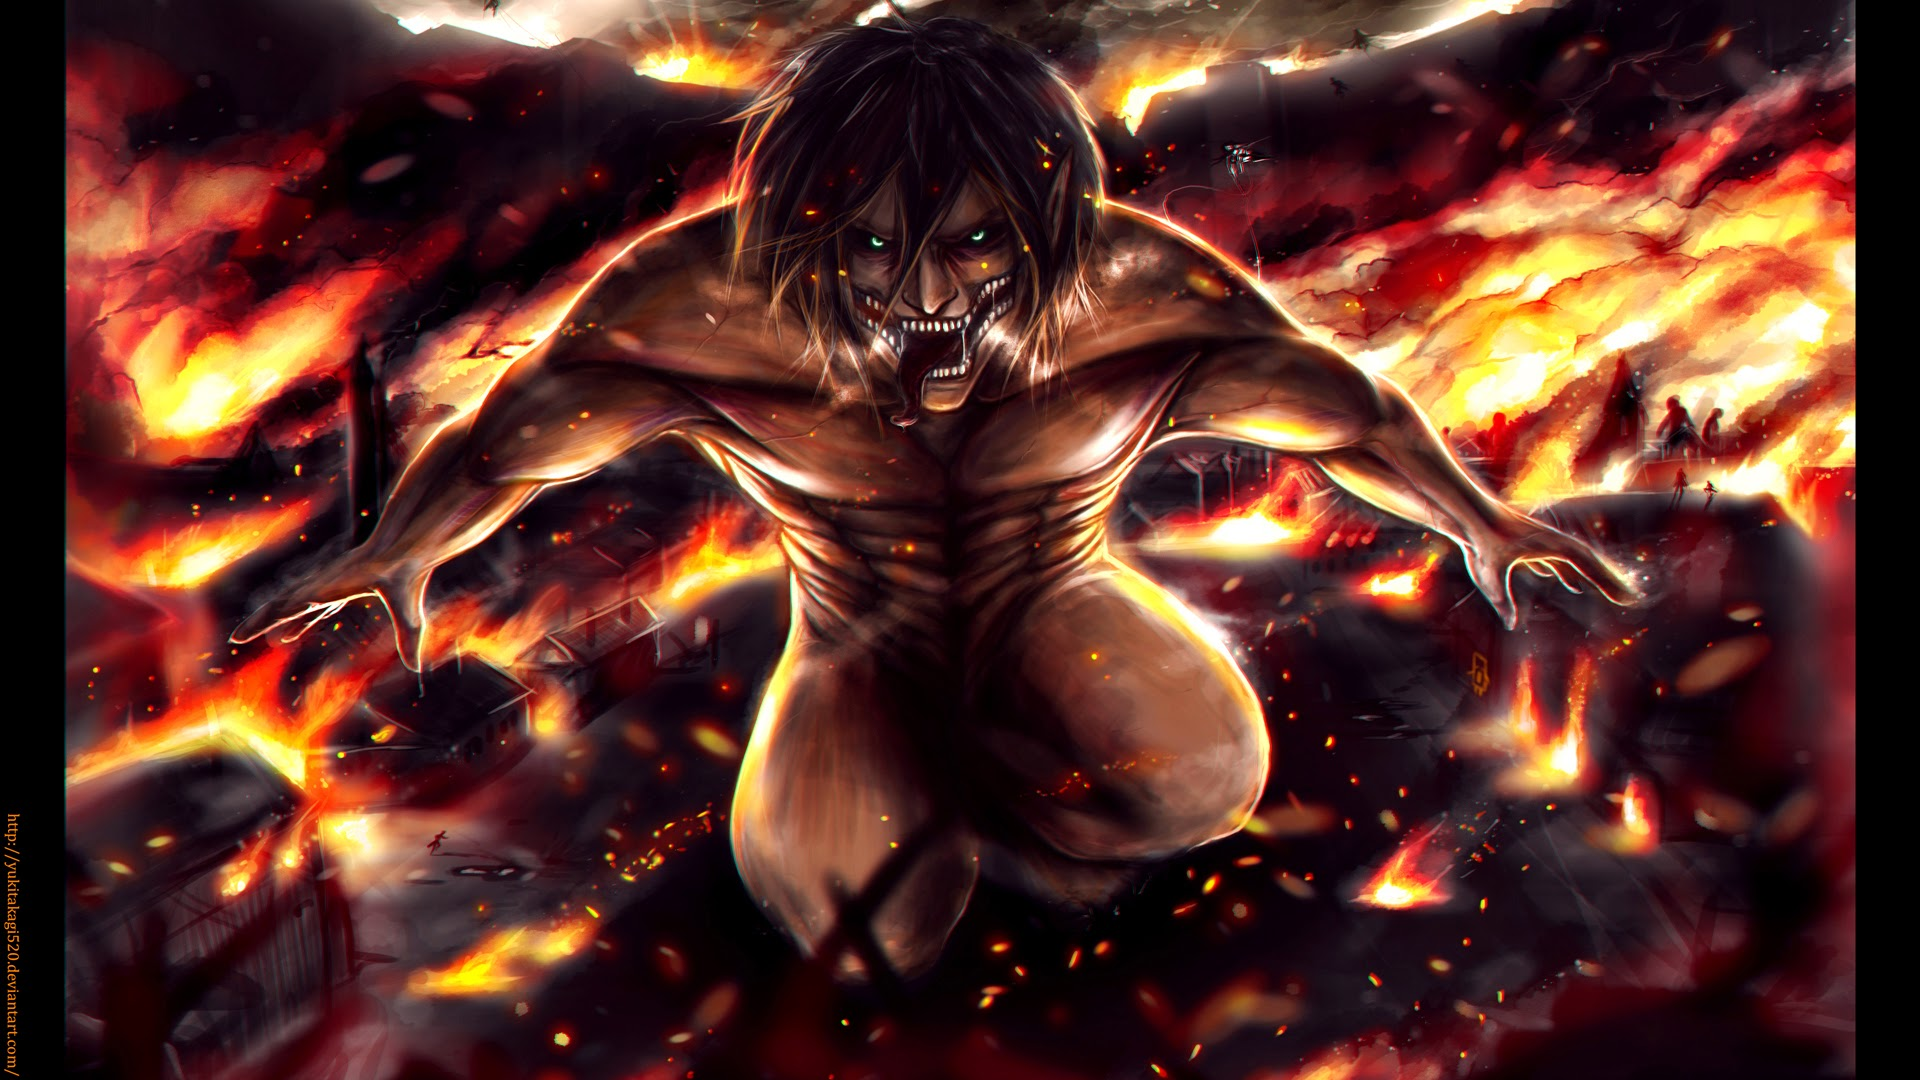 49 Attack On Titan Hd Wallpapers On Wallpapersafari